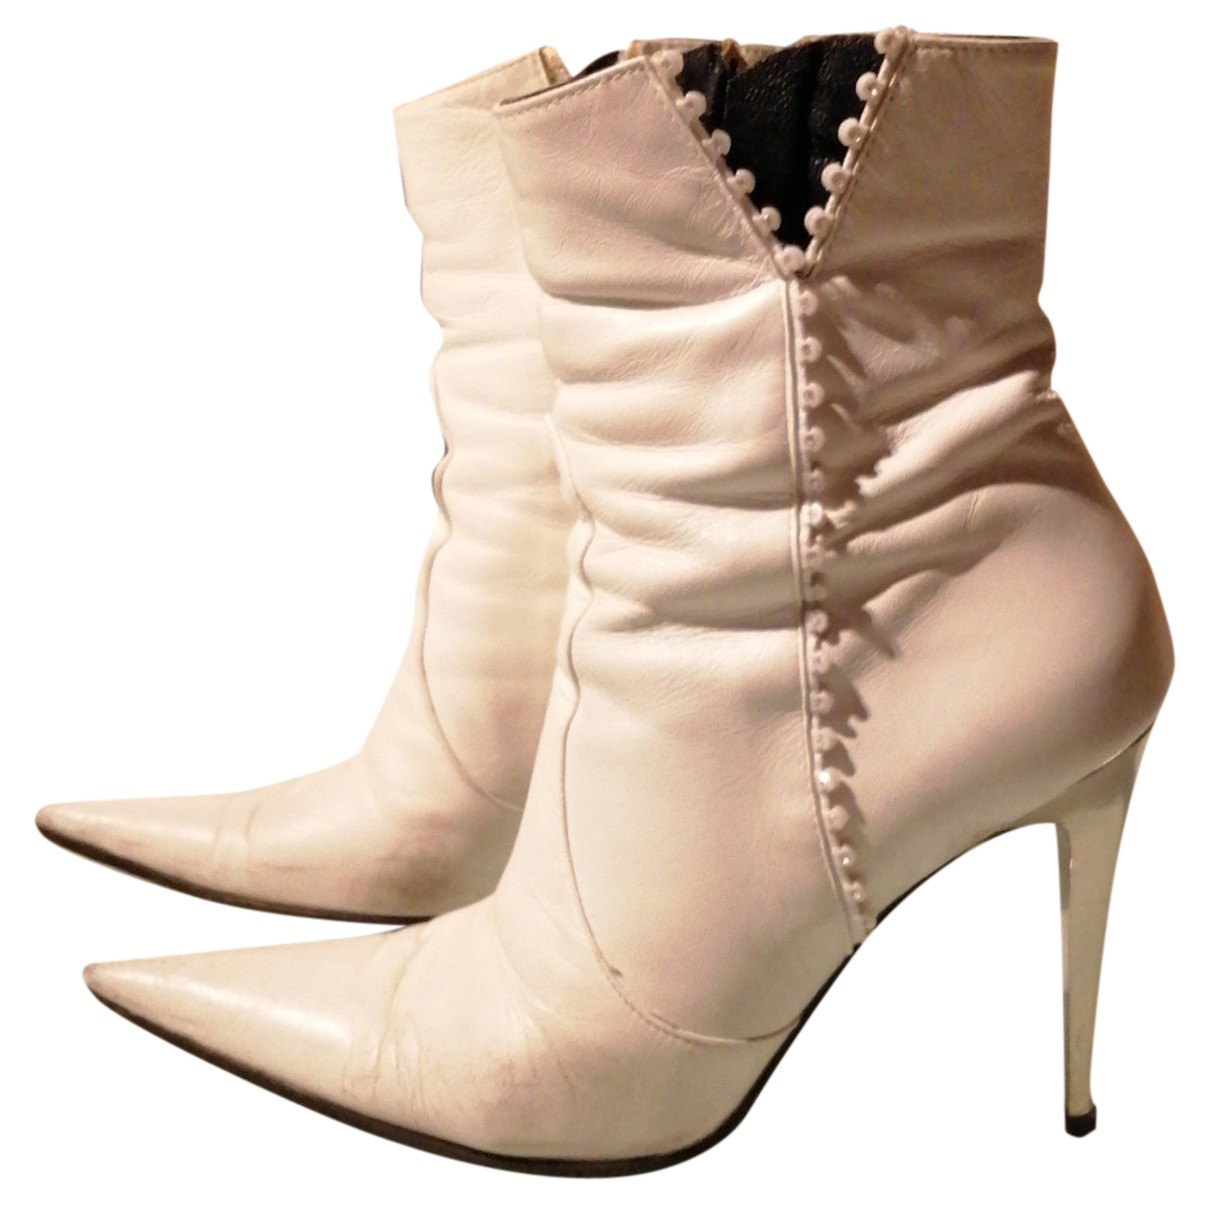 Autre Marque N White Leather Ankle boots for Women 38 EU